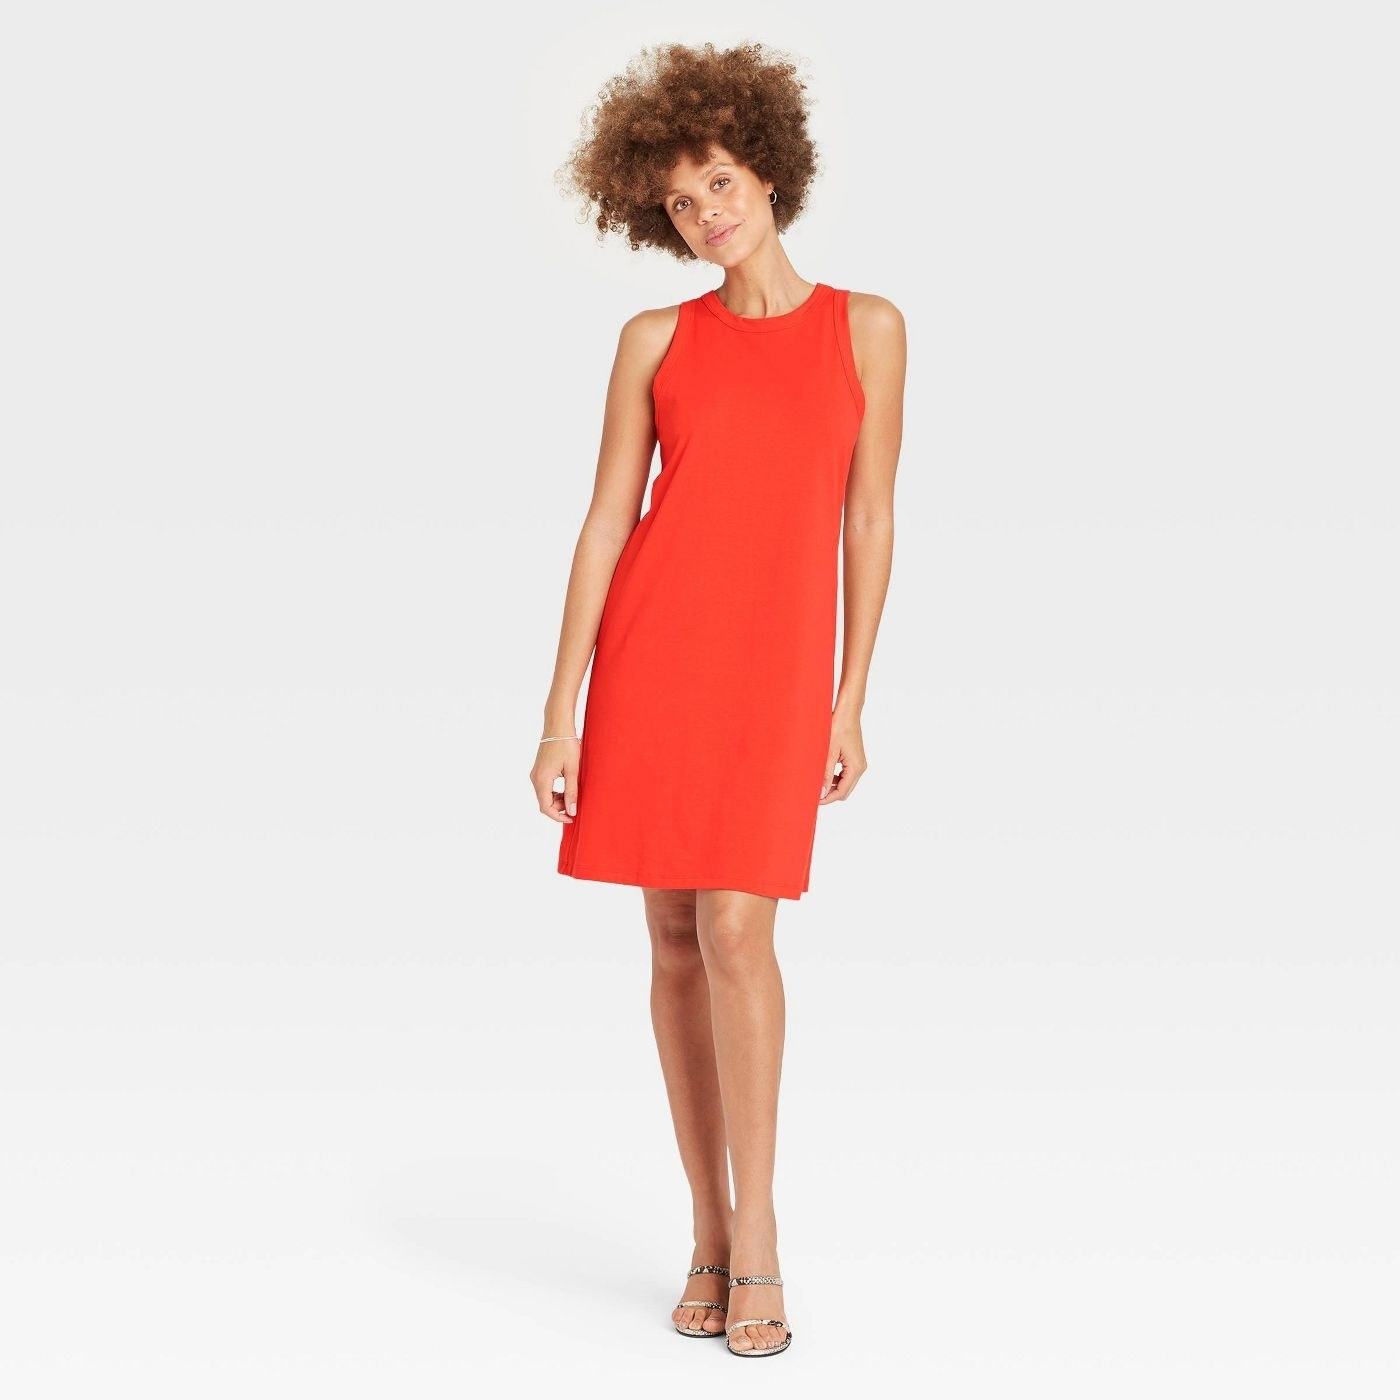 Model wearing orange dress, stops at the knee